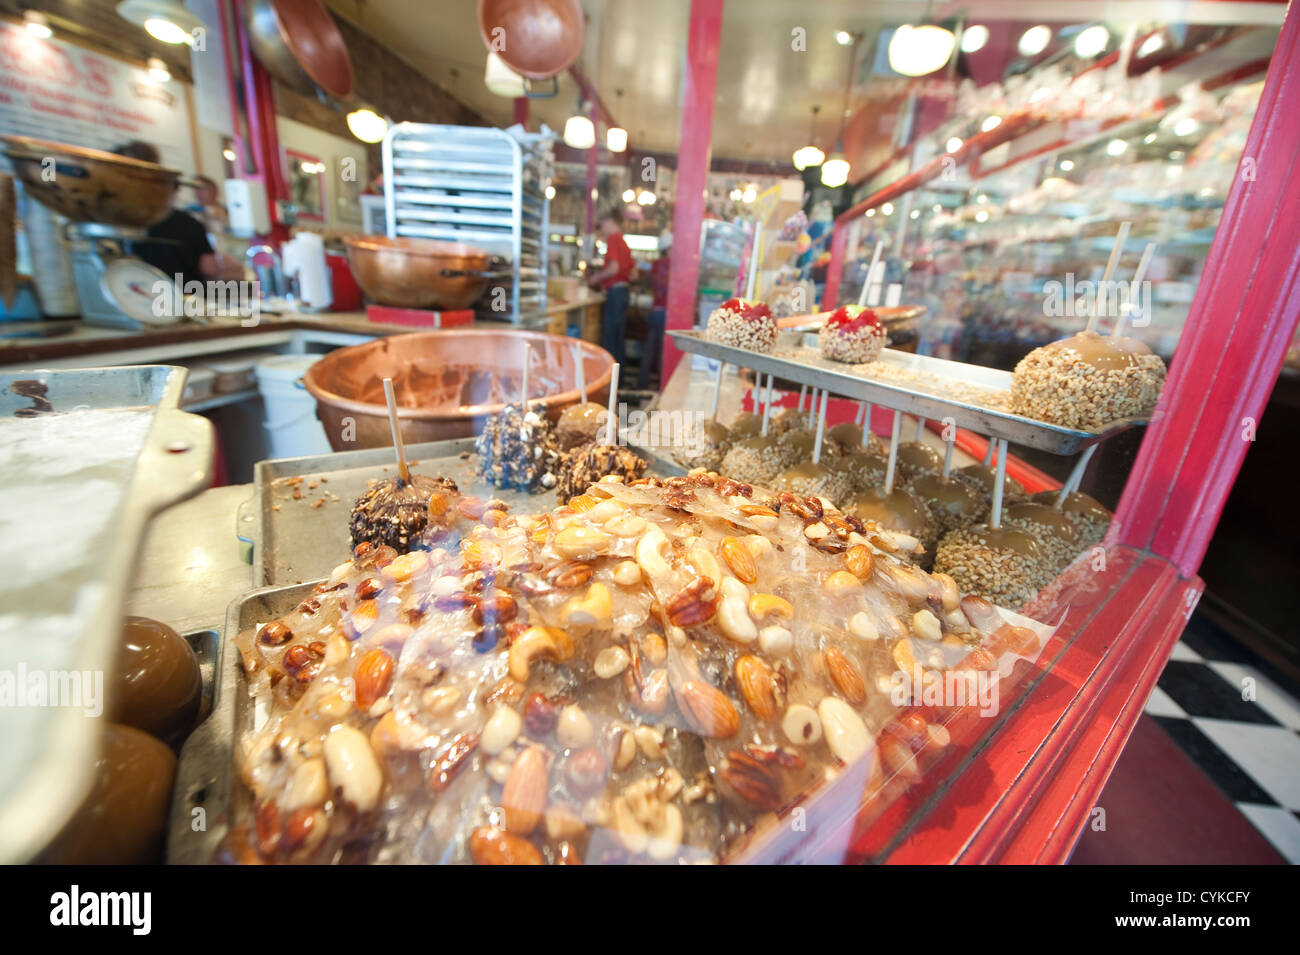 USA, Nevada. Reds candy shop in historic downtown Virginia CIty, Nevada. - Stock Image